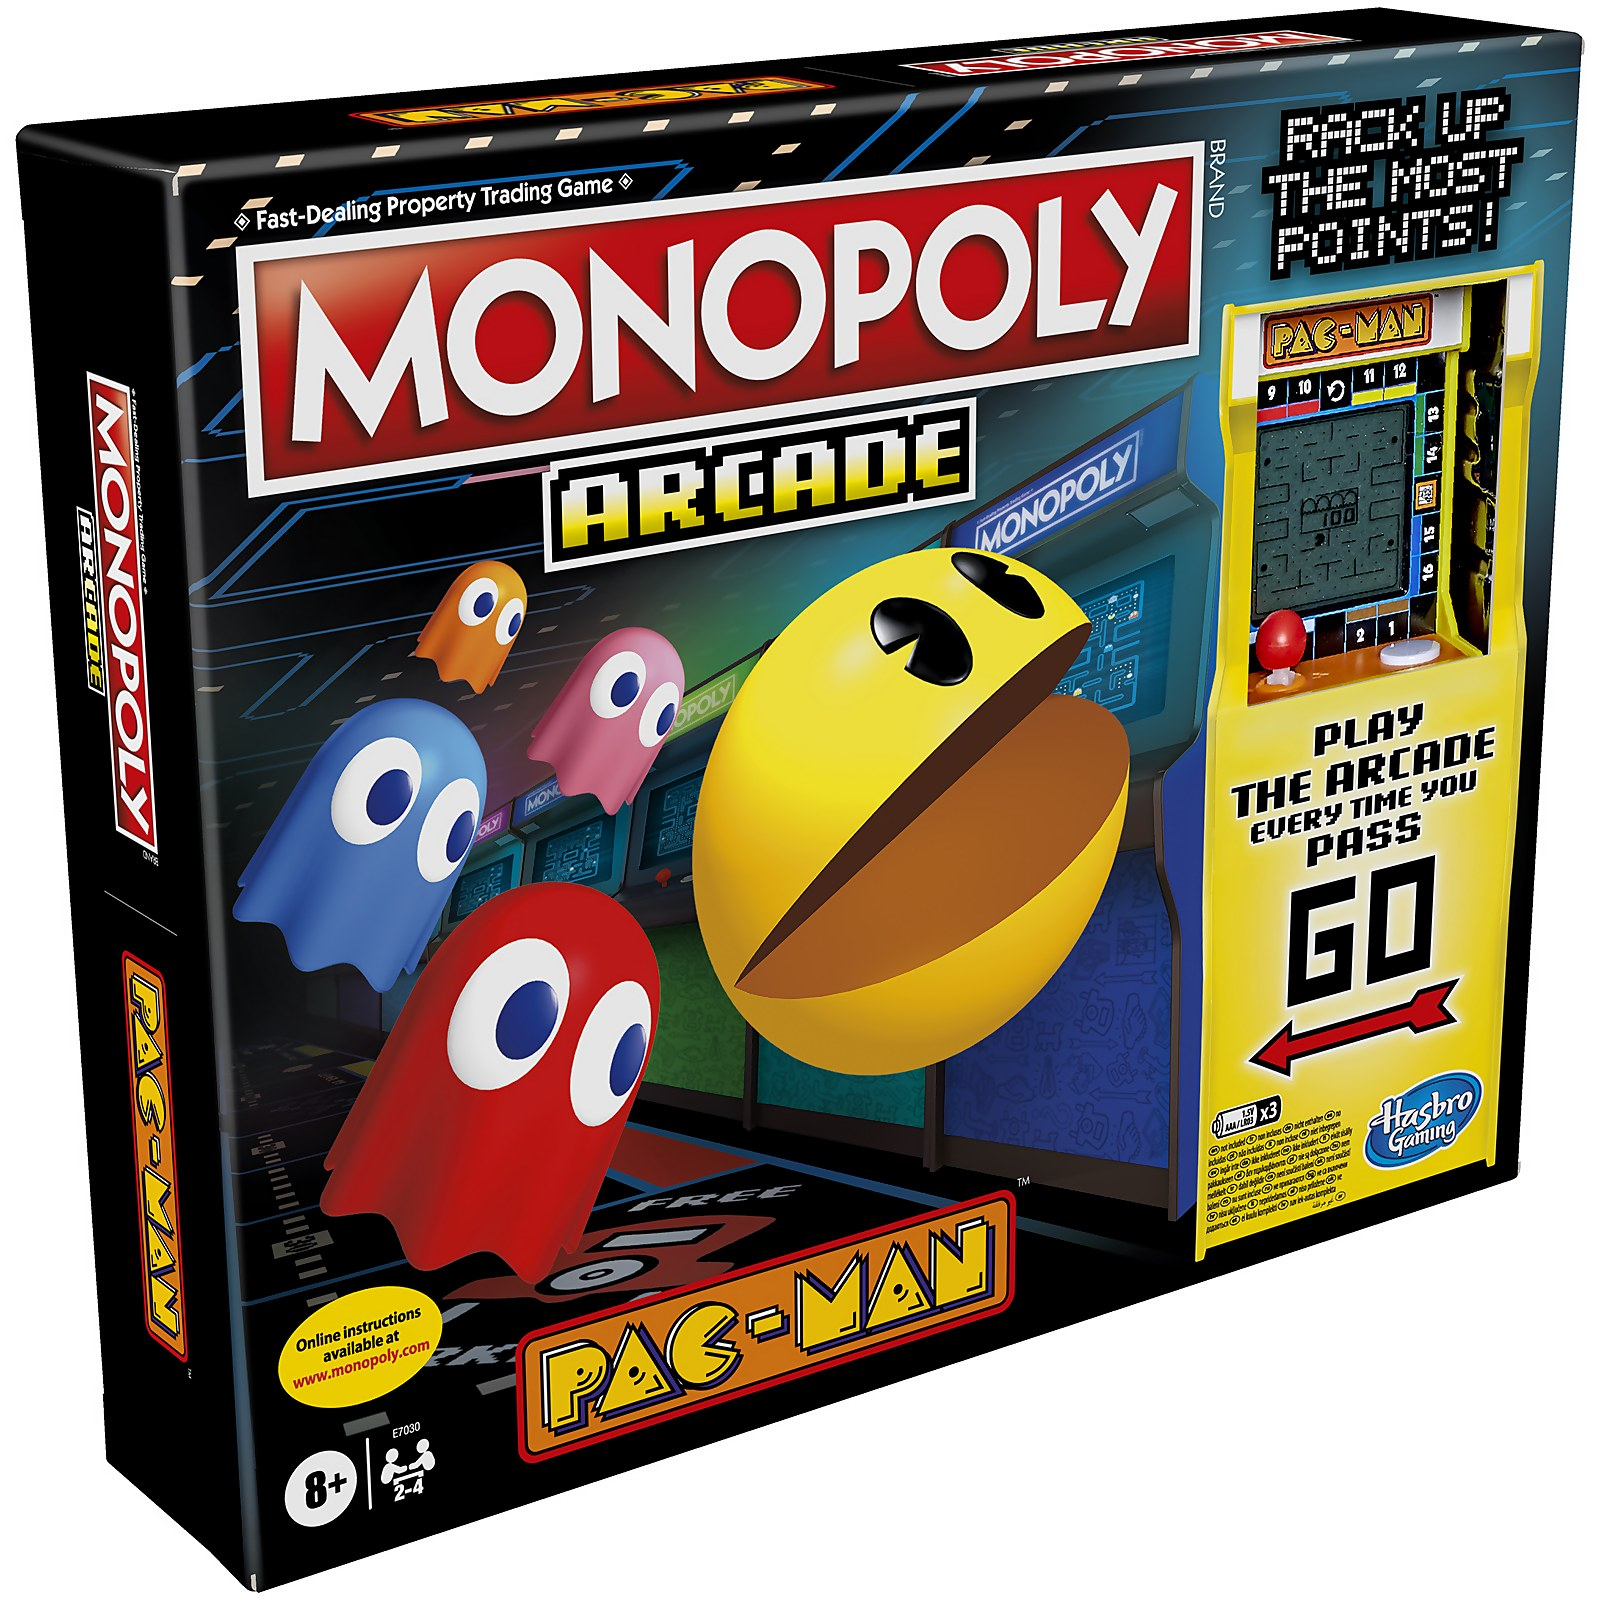 Image of Monopoly Arcade Pacman Board Game